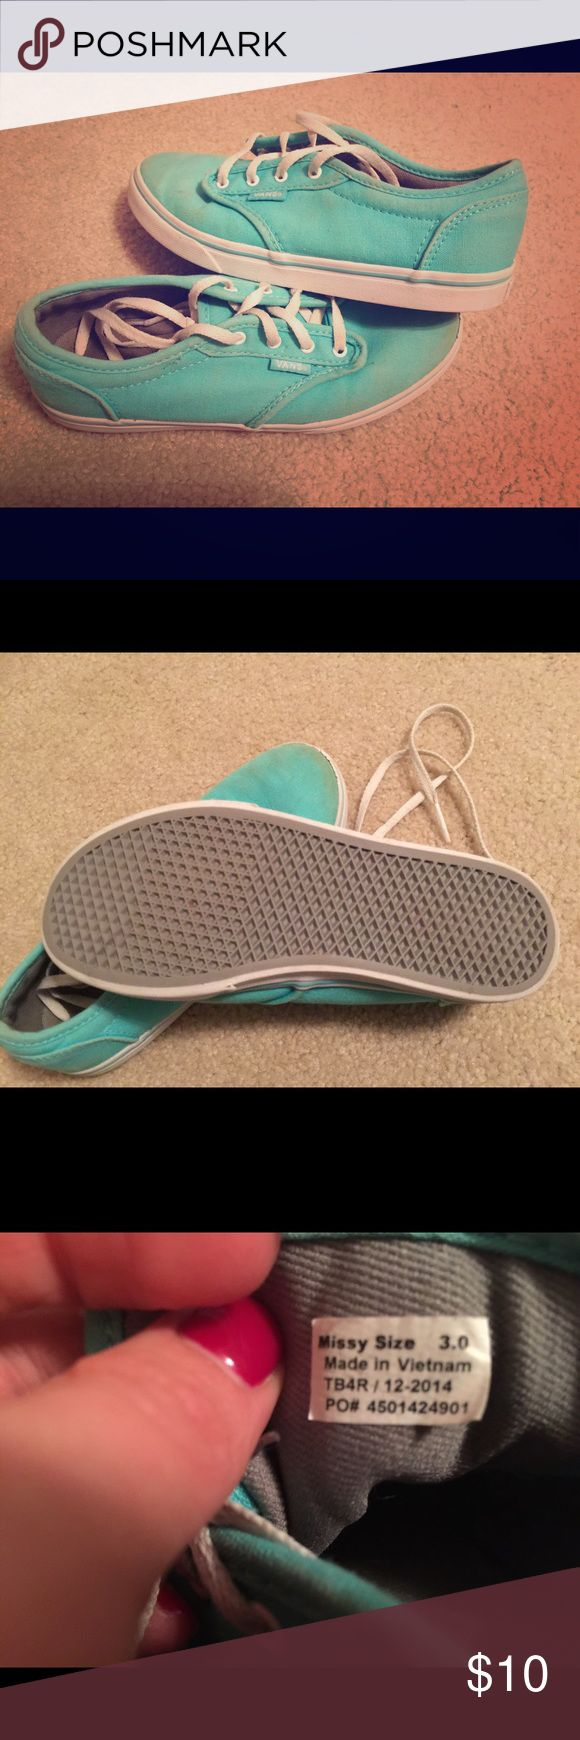 Kids Van Shoes. Good condition. Size 3. Girls sized 3 teal Vans. Vans Shoes Athletic Shoes